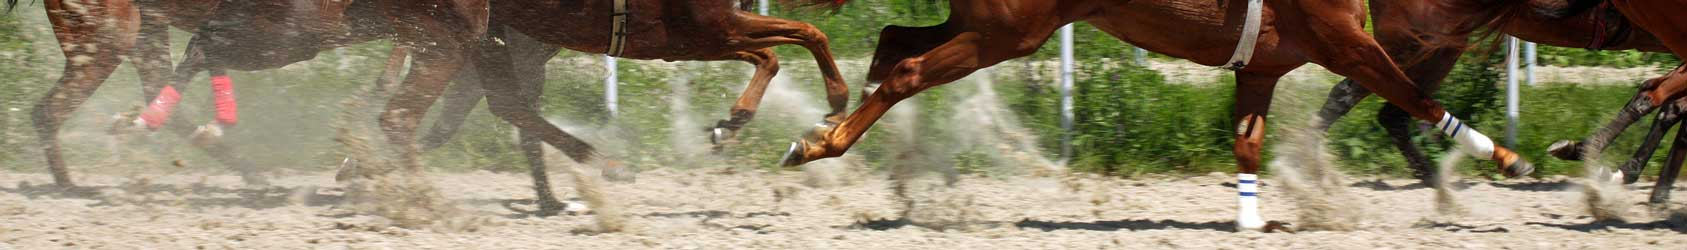 PEMF Devices for Horses